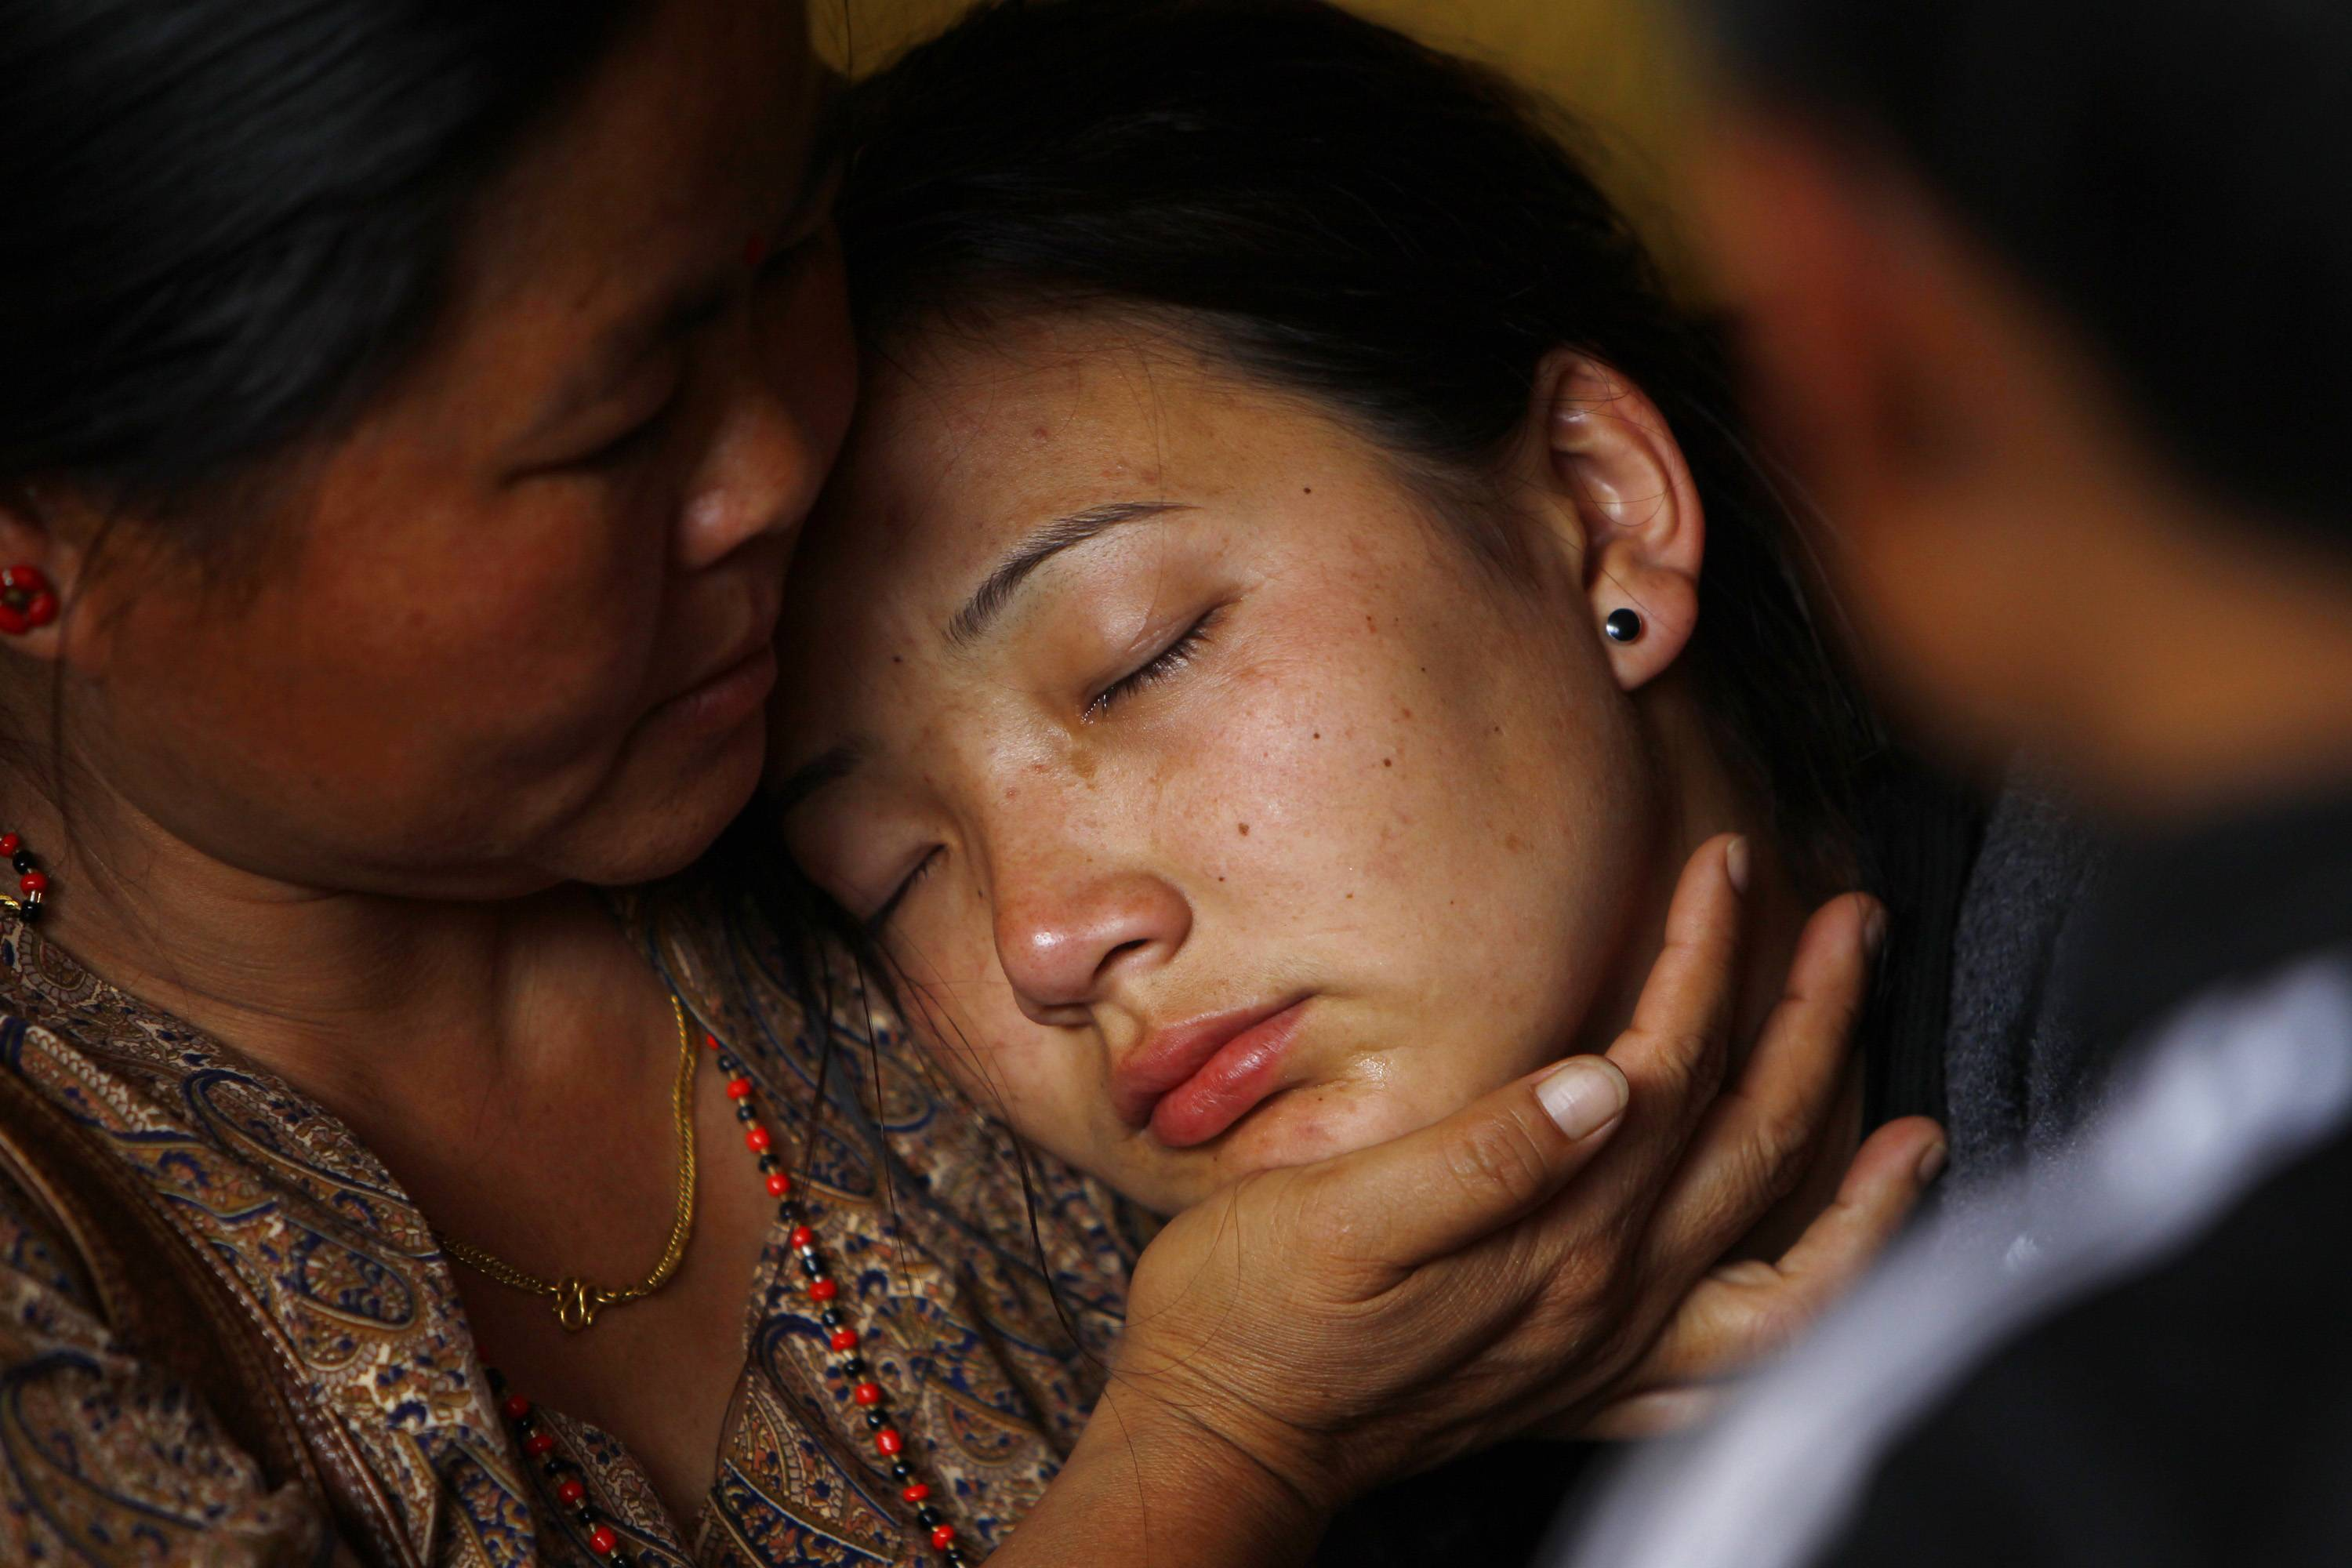 Daughter of Nepalese mountaineer Ang Kaji Sherpa, killed in an avalanche on Mount Everest, cries Saturday as her father's body is brought to the Sherpa Monastery in Katmandu, Nepal.